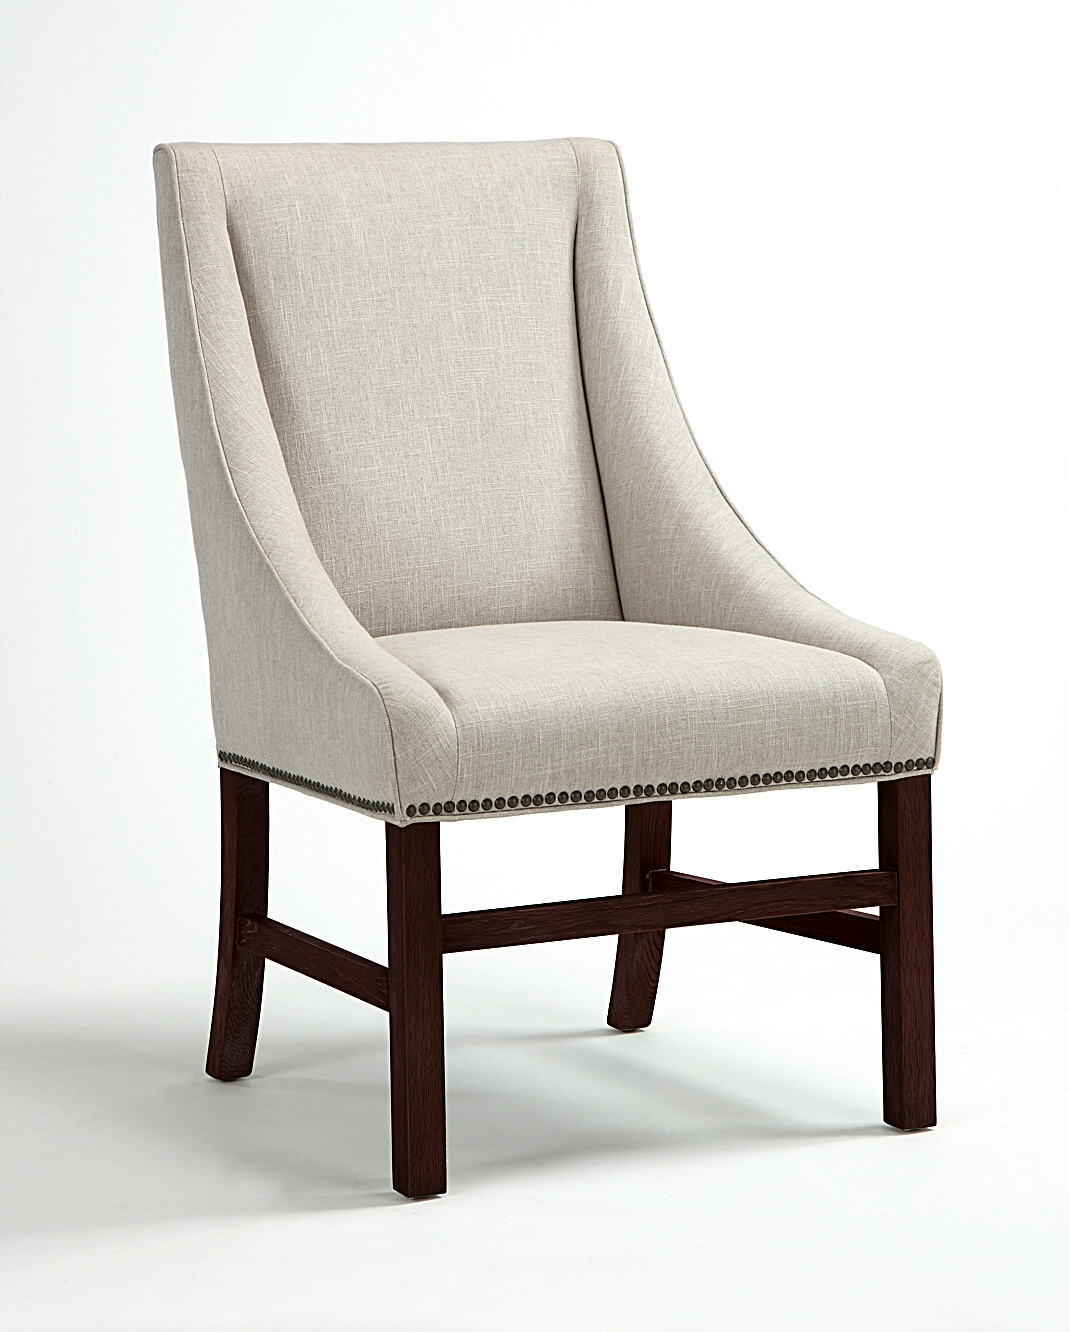 Dining chair upholstery Photo - 1